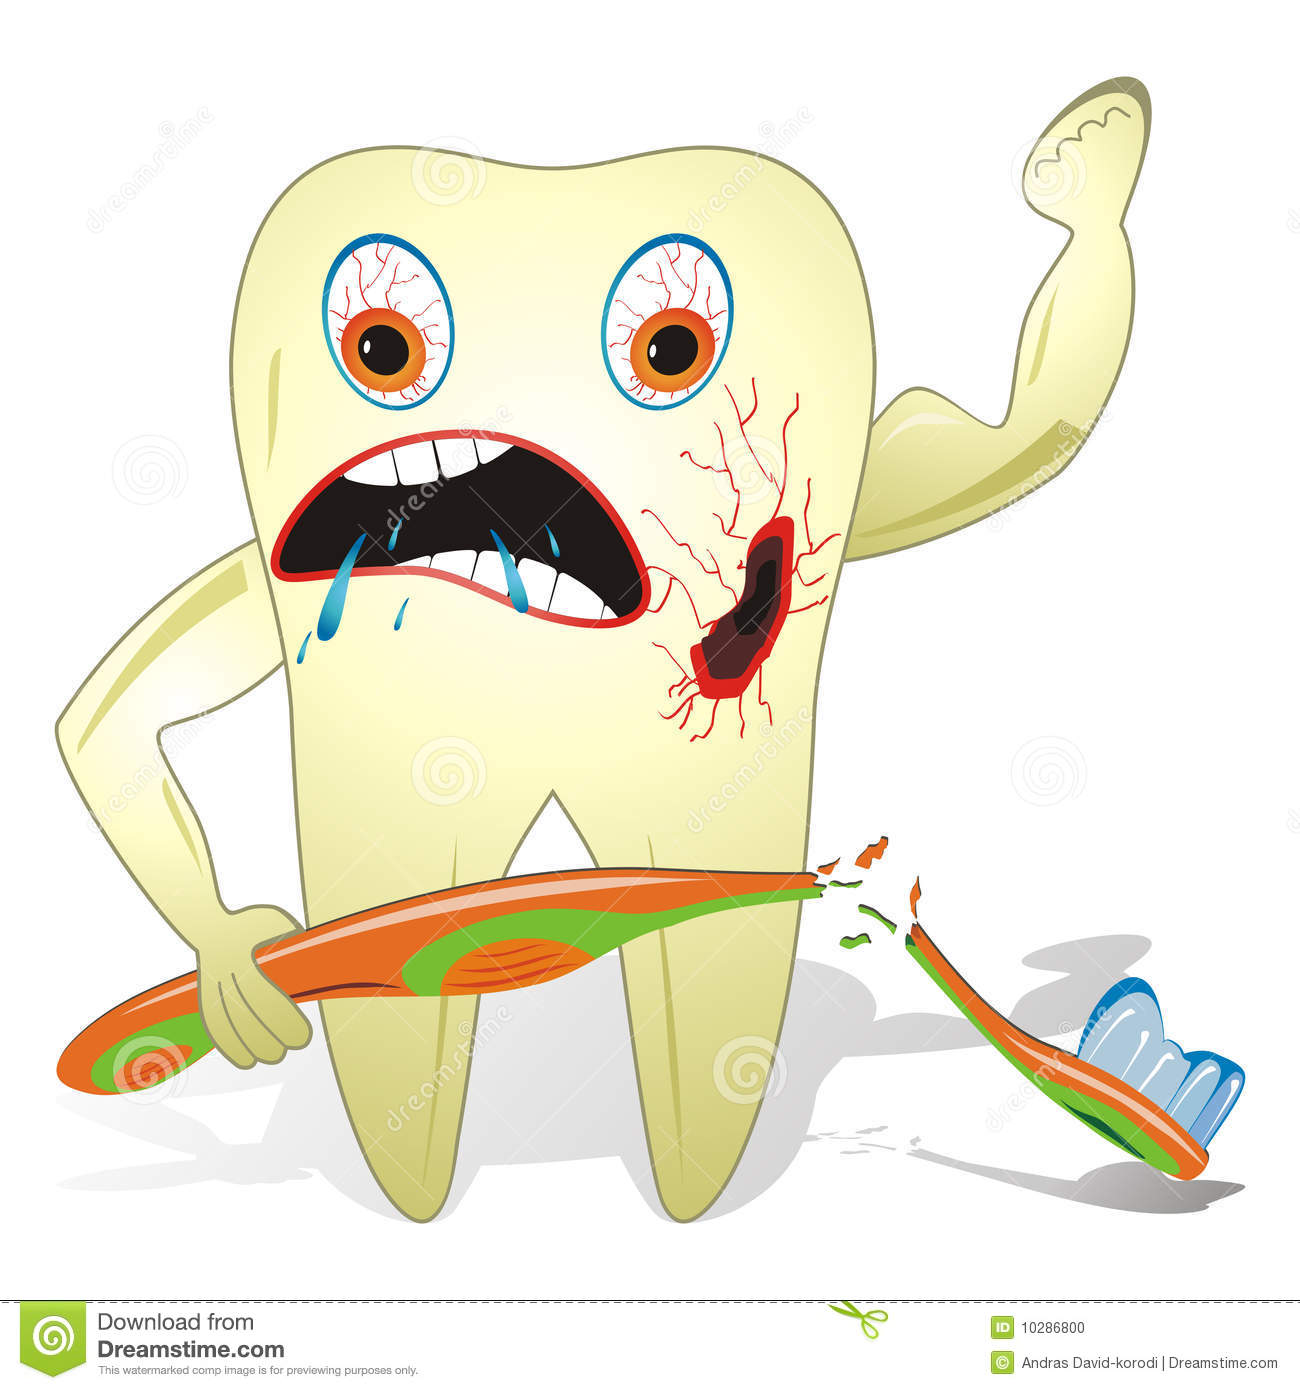 Unhealthy And Unfriendly Tooth Unfriendly Clipart